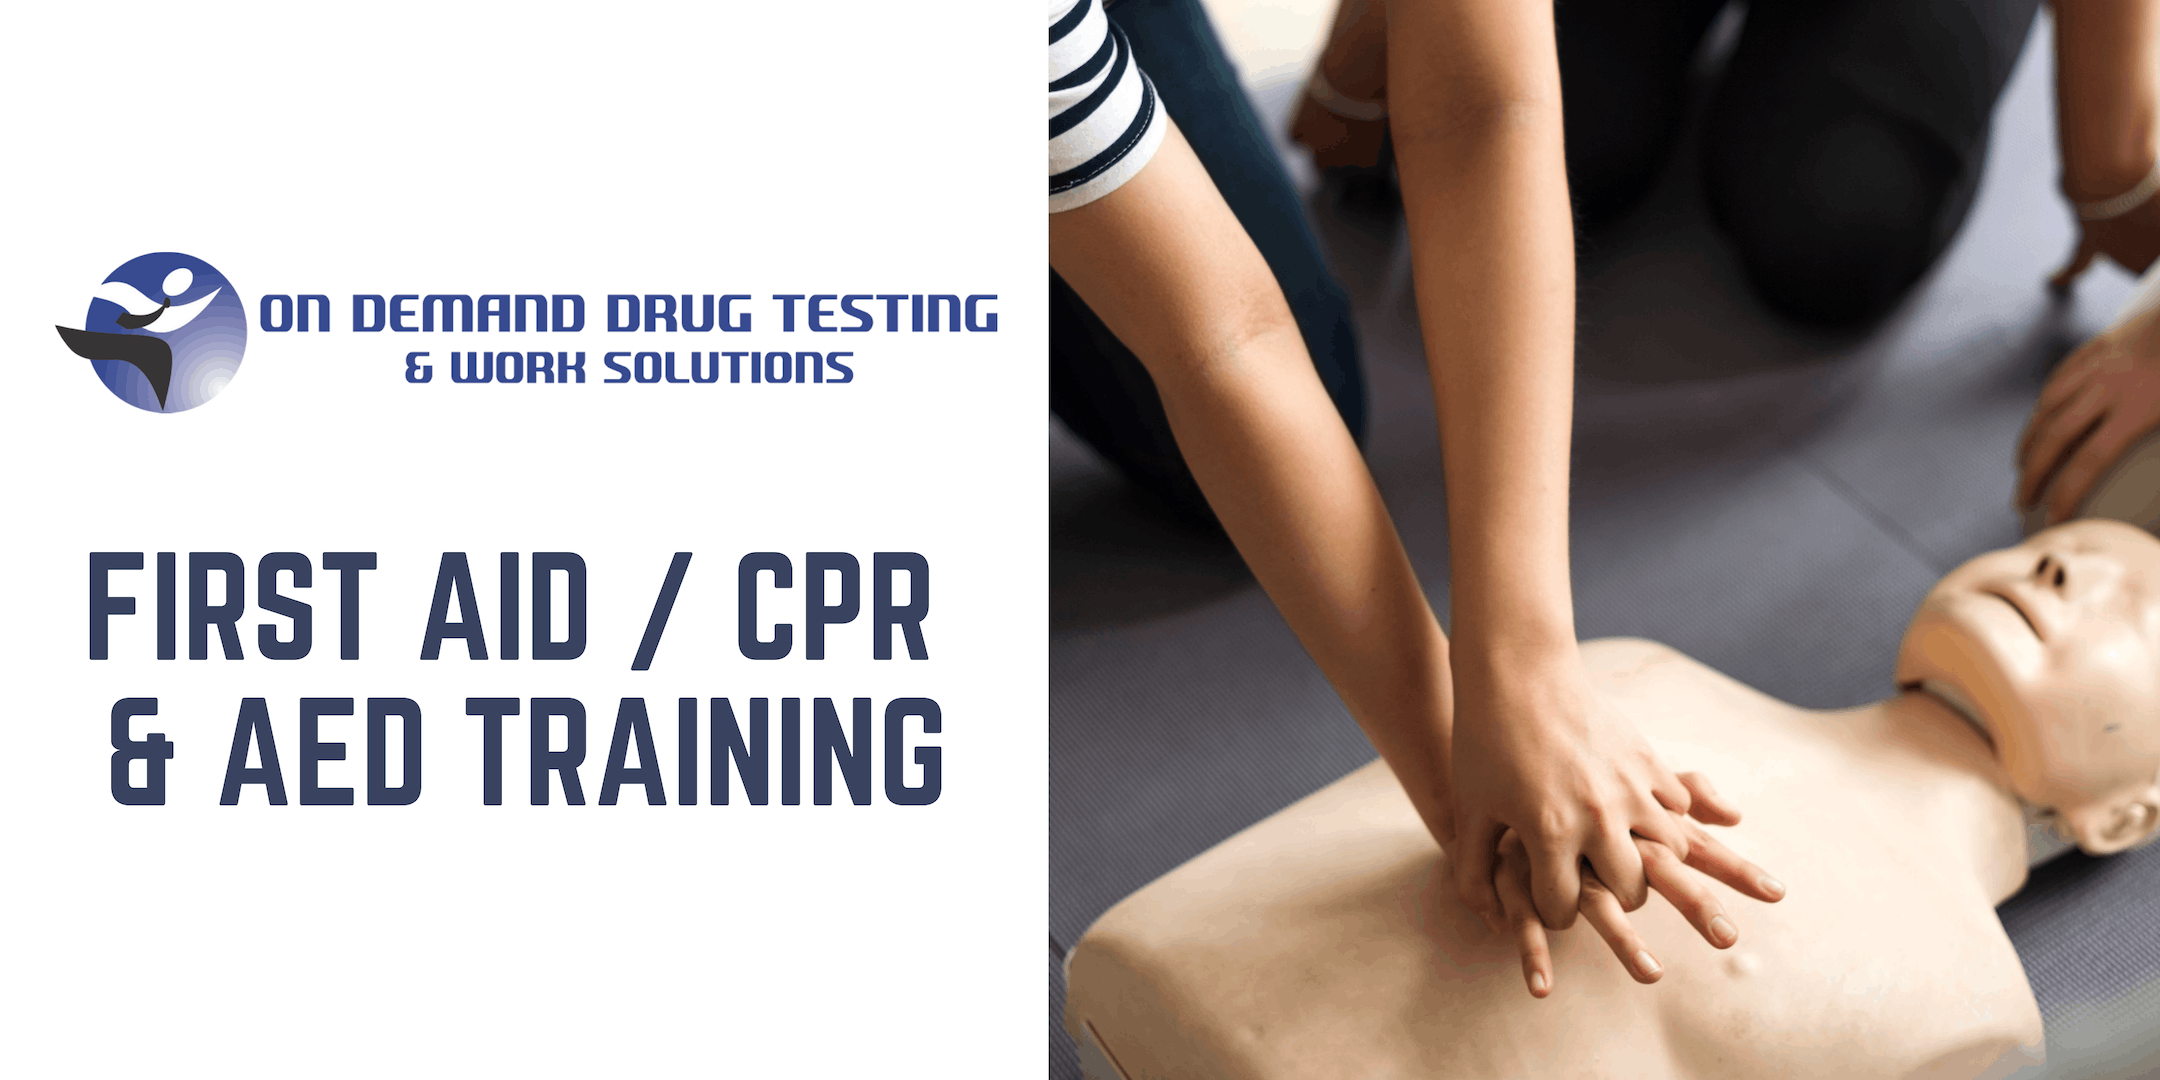 On Demand First Aid / CPR & AED Training - We